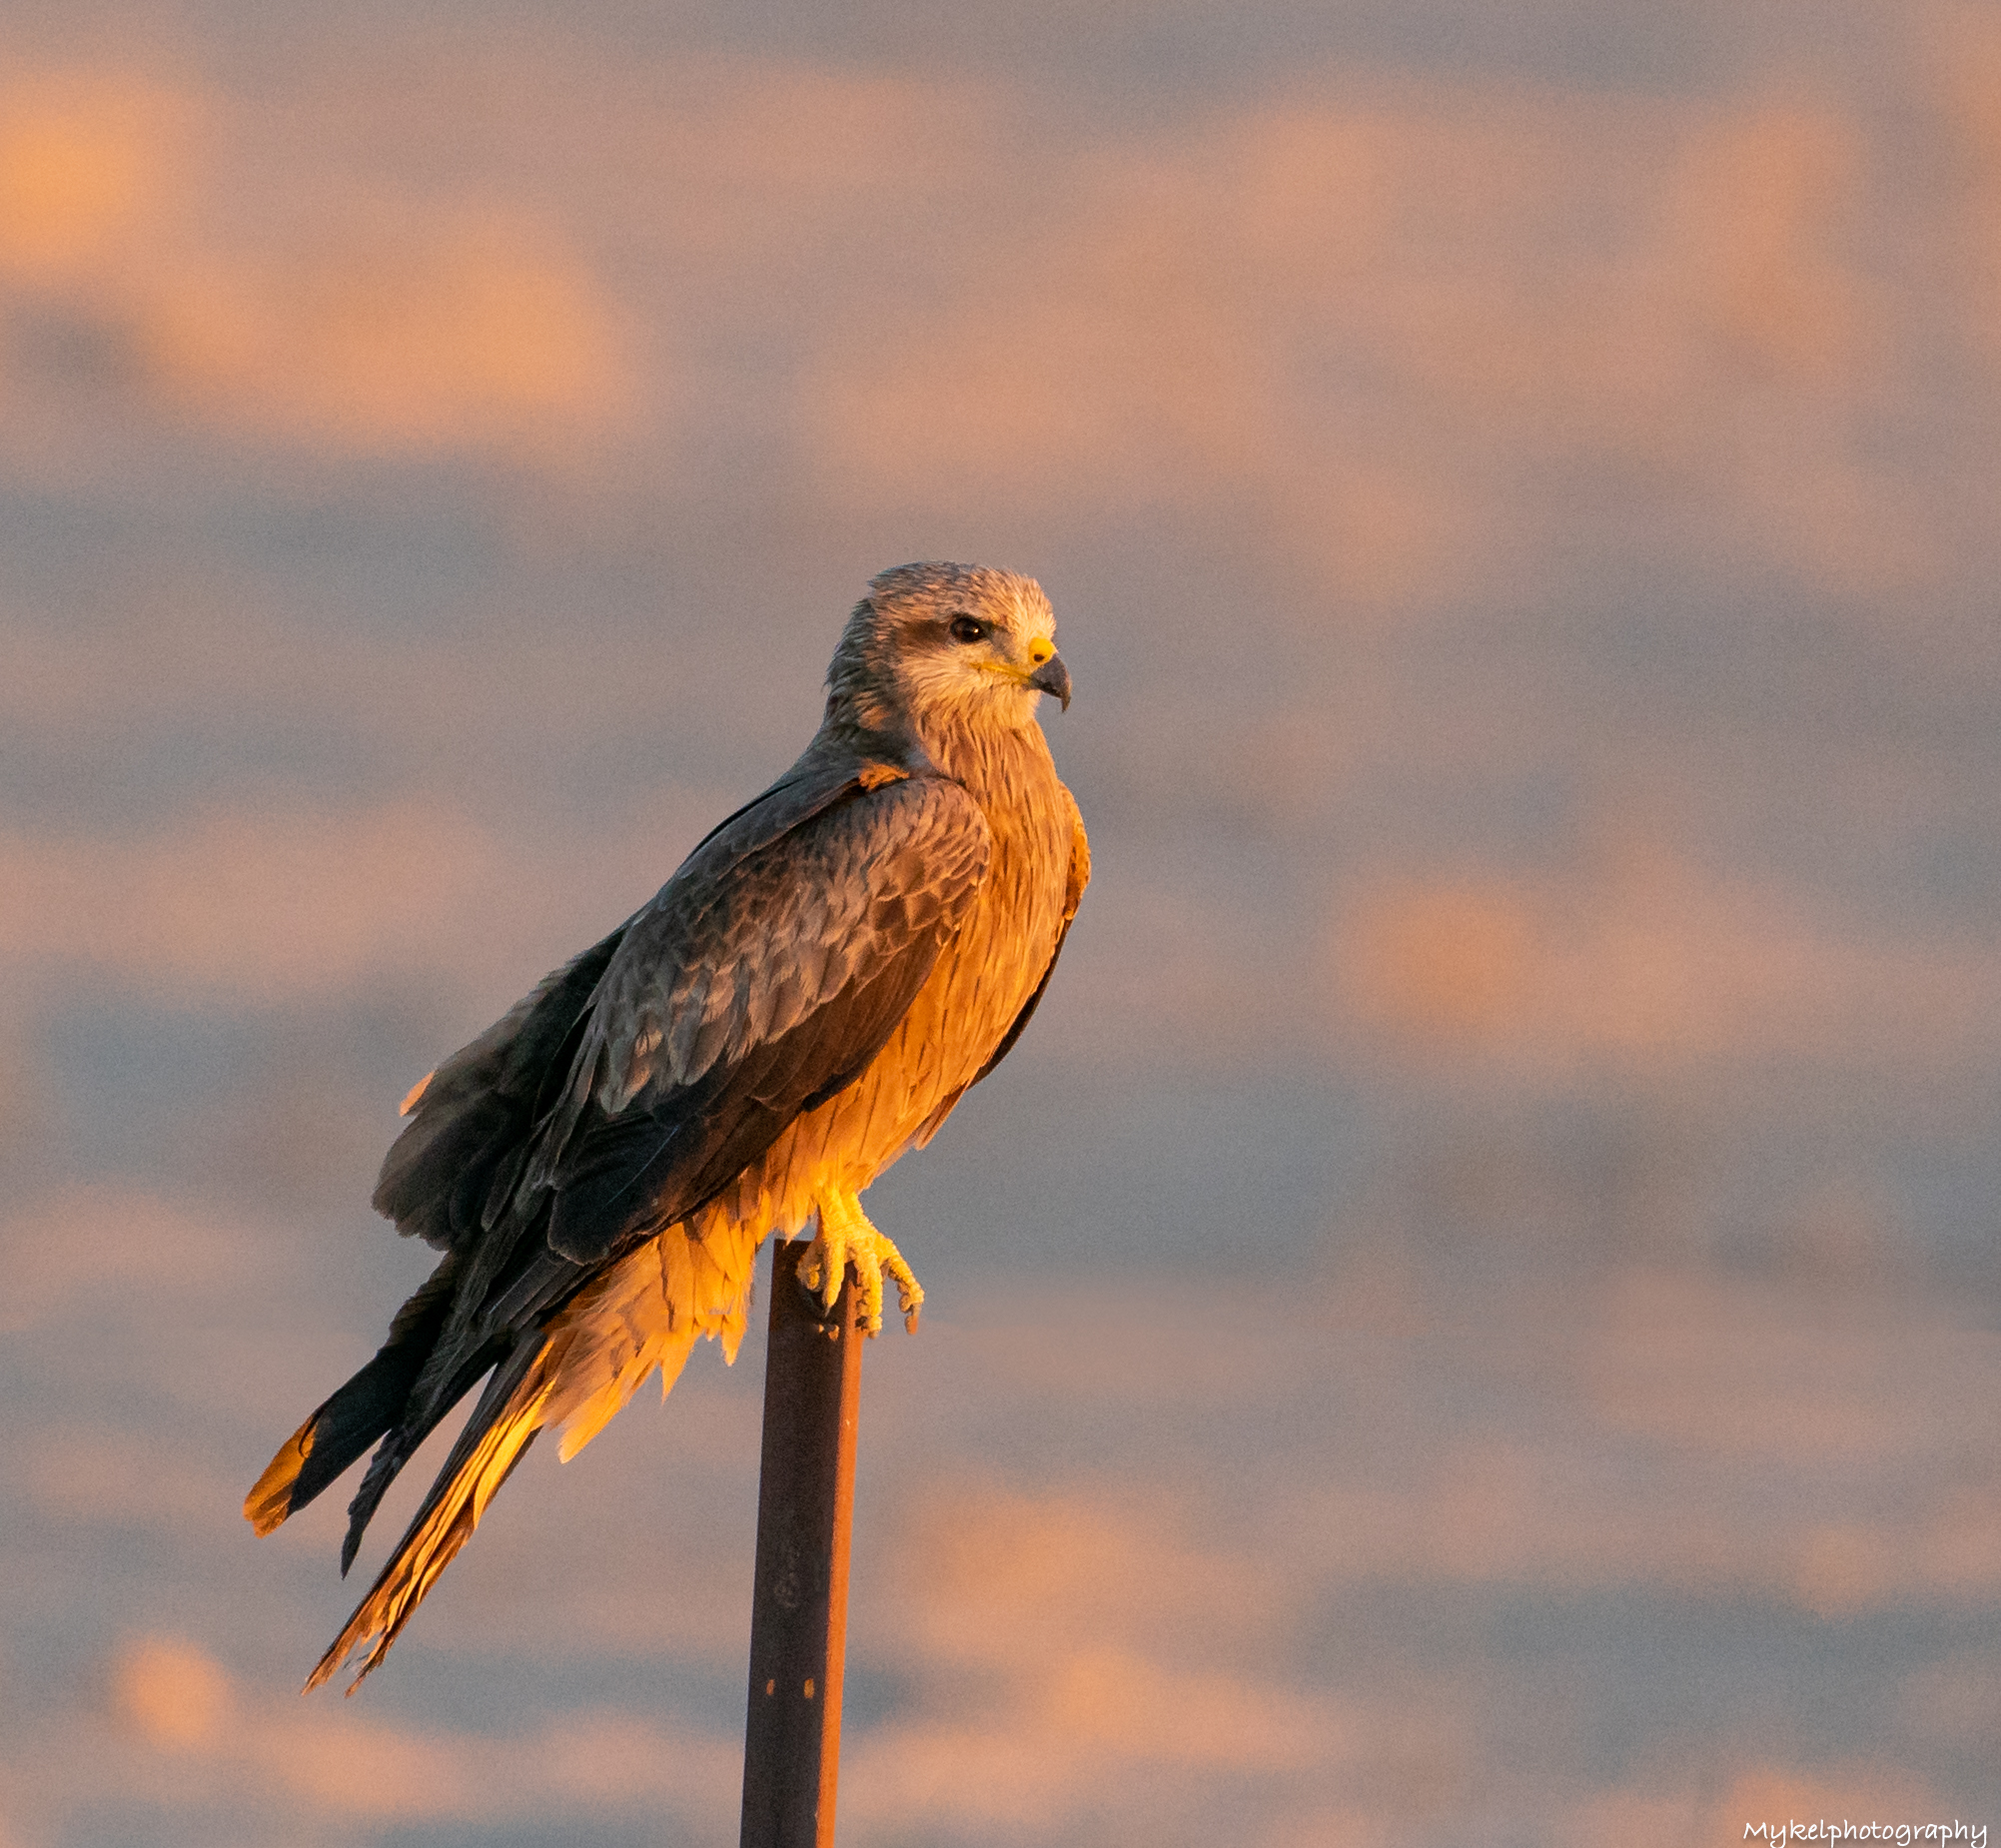 Black Kite  Milvus migrans  Accipitridae  In their natural habitat, Black Kites are spectacular, soaring effortlessly in the wind, their long forked tails constantly twisting to manoeuvre the bird while searching for food on the ground below, or skillfully catching insects on the wing.